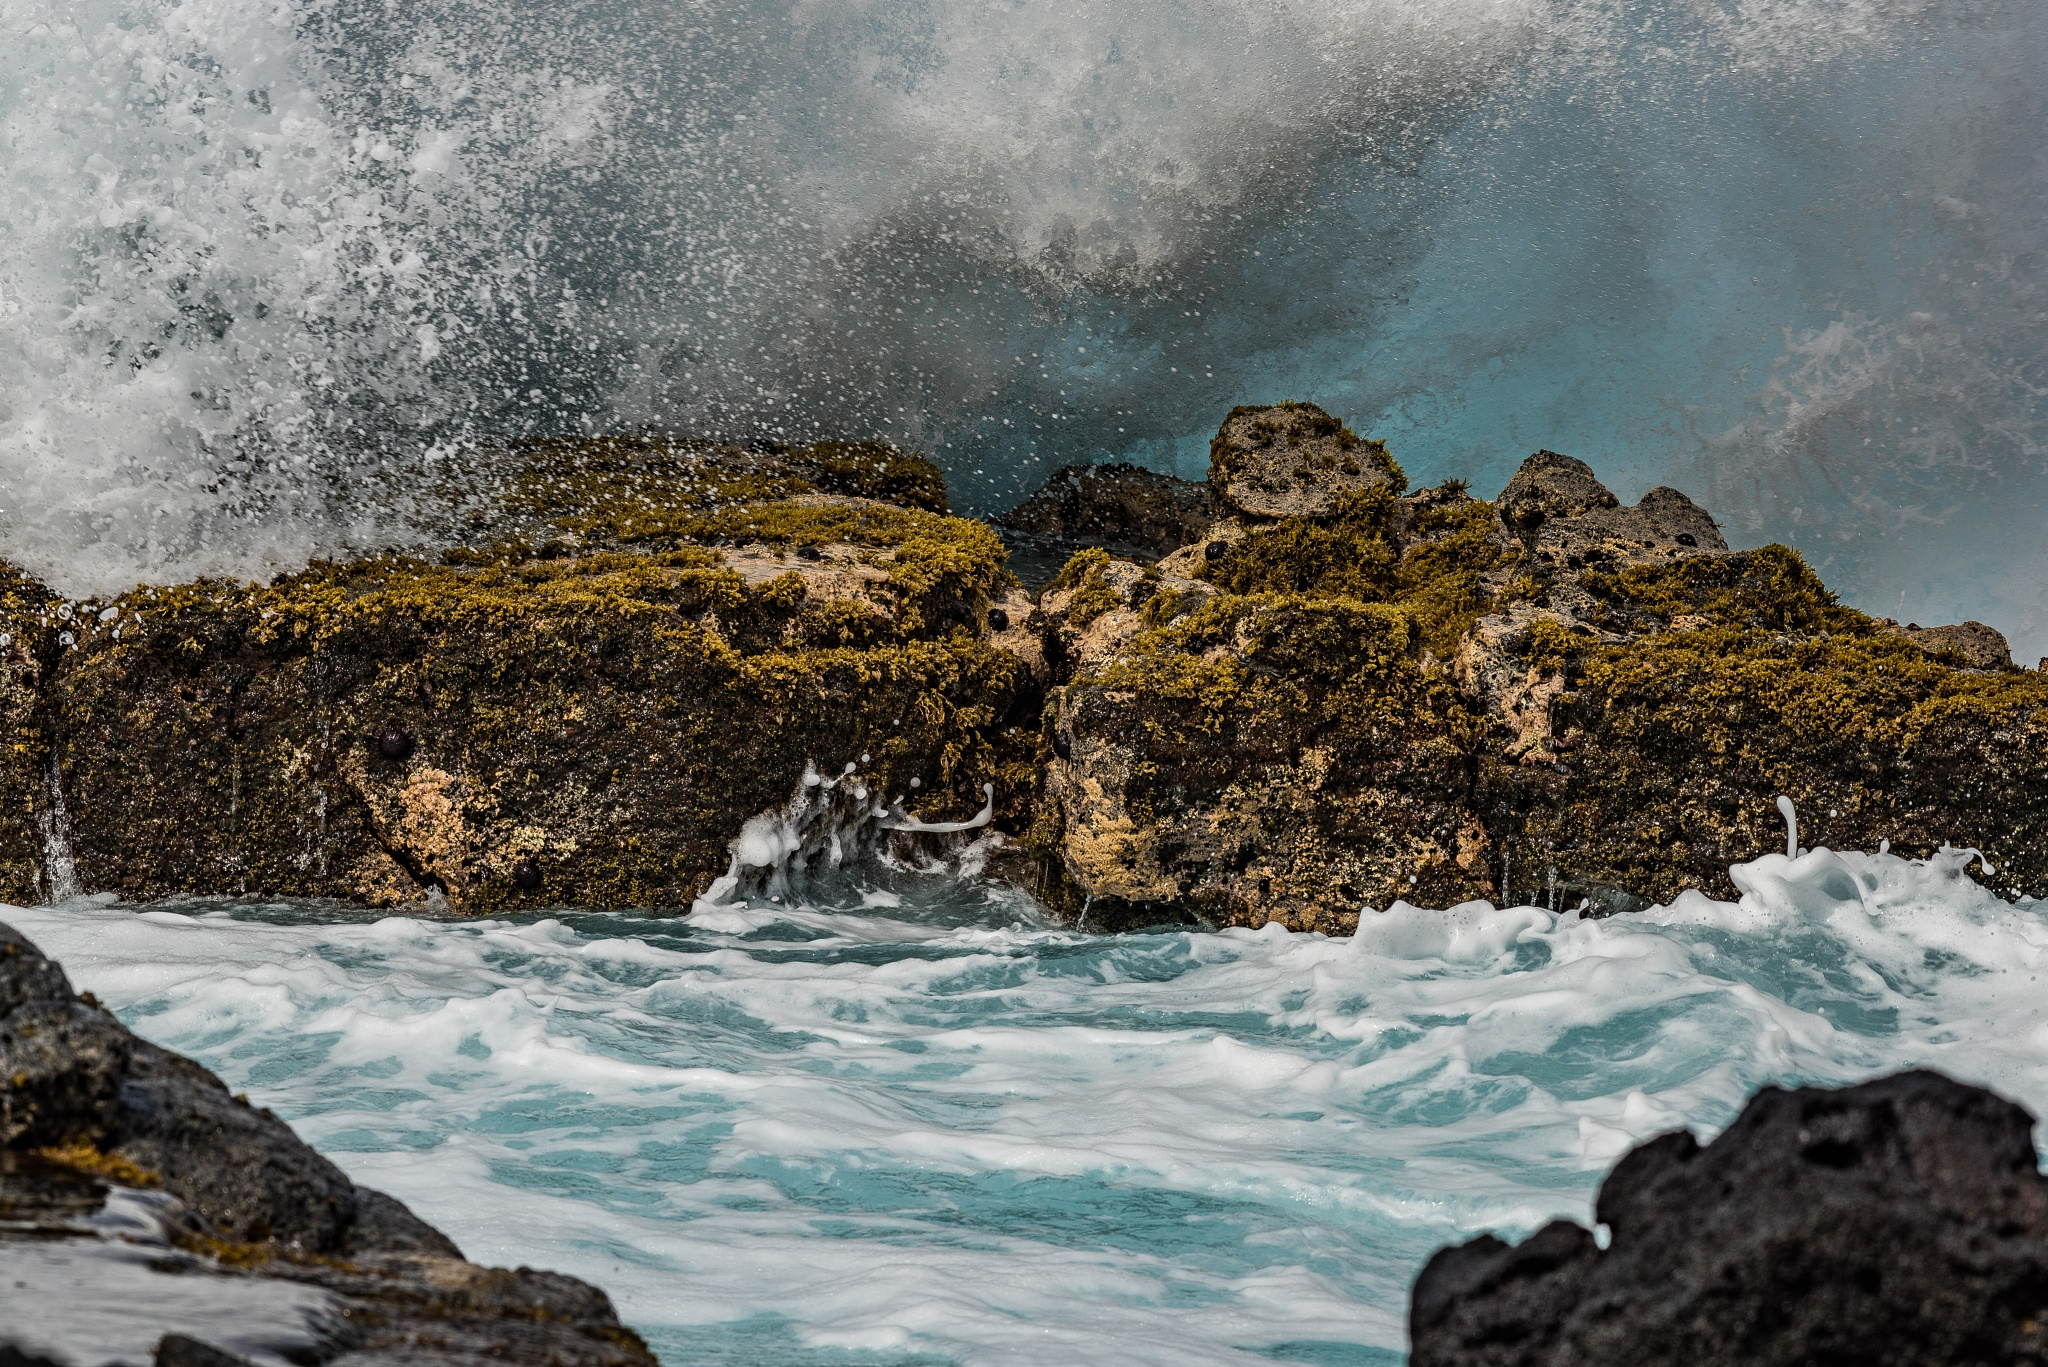 The Wave Crashed Upon the Shore by Steve Aicinena